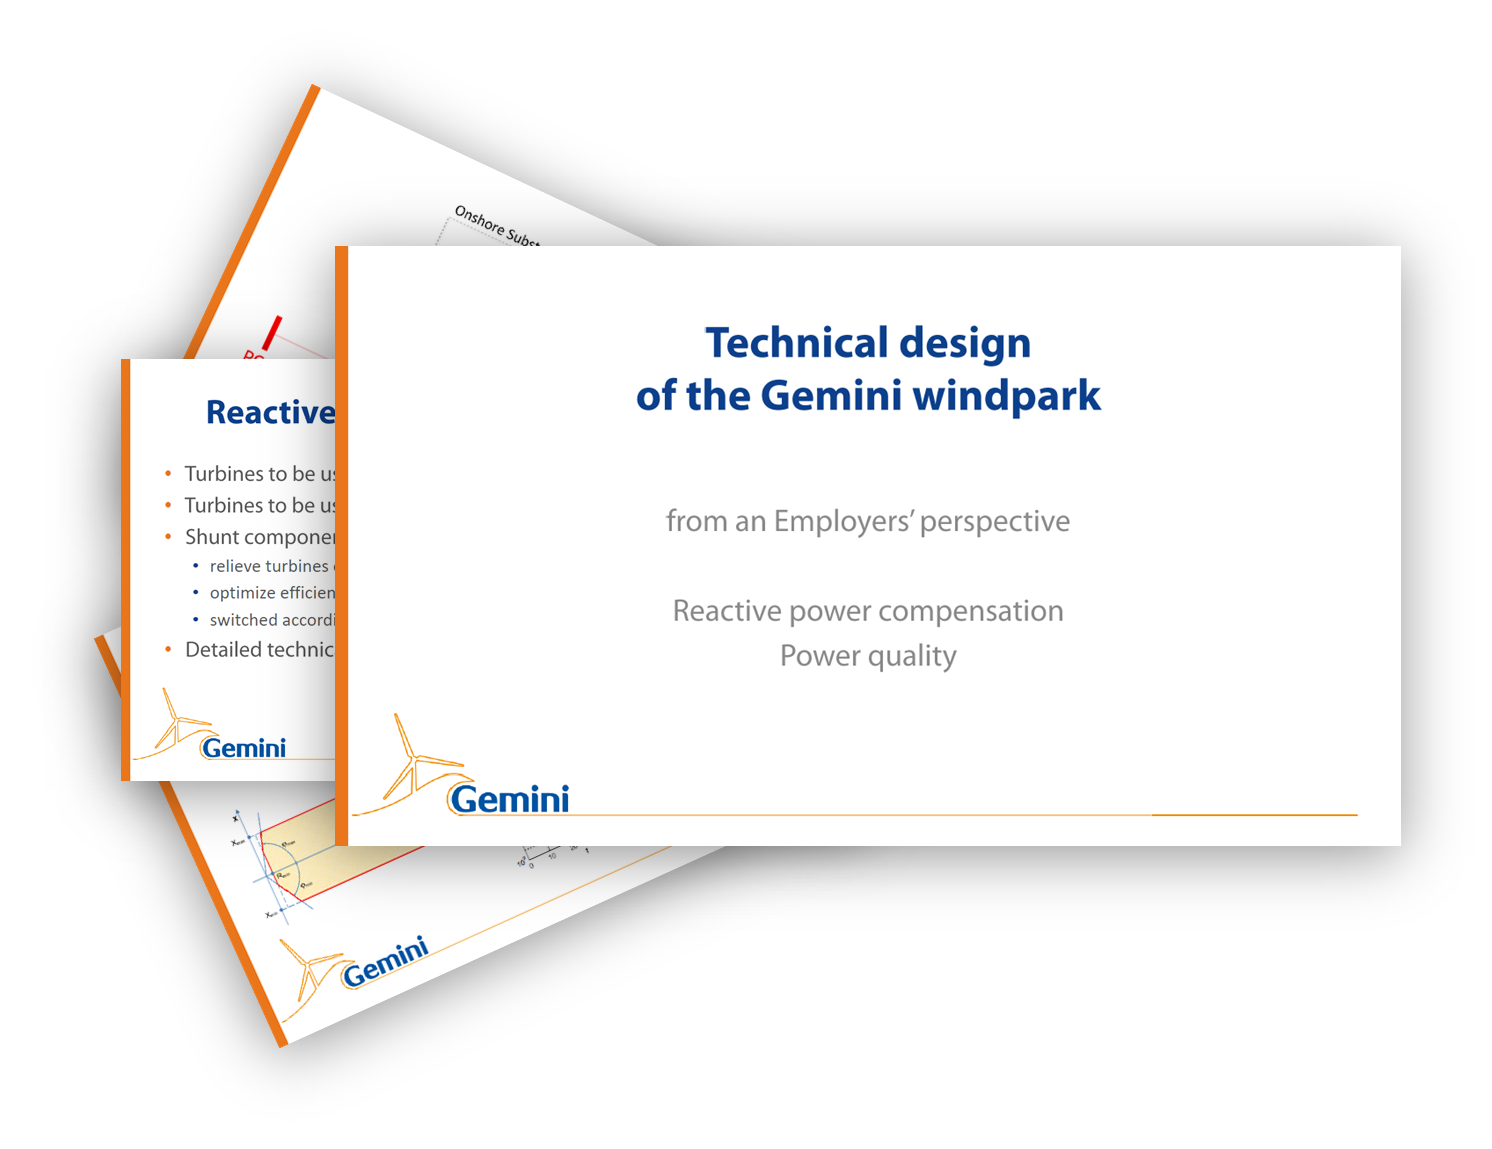 Technical design of the Gemini windpark